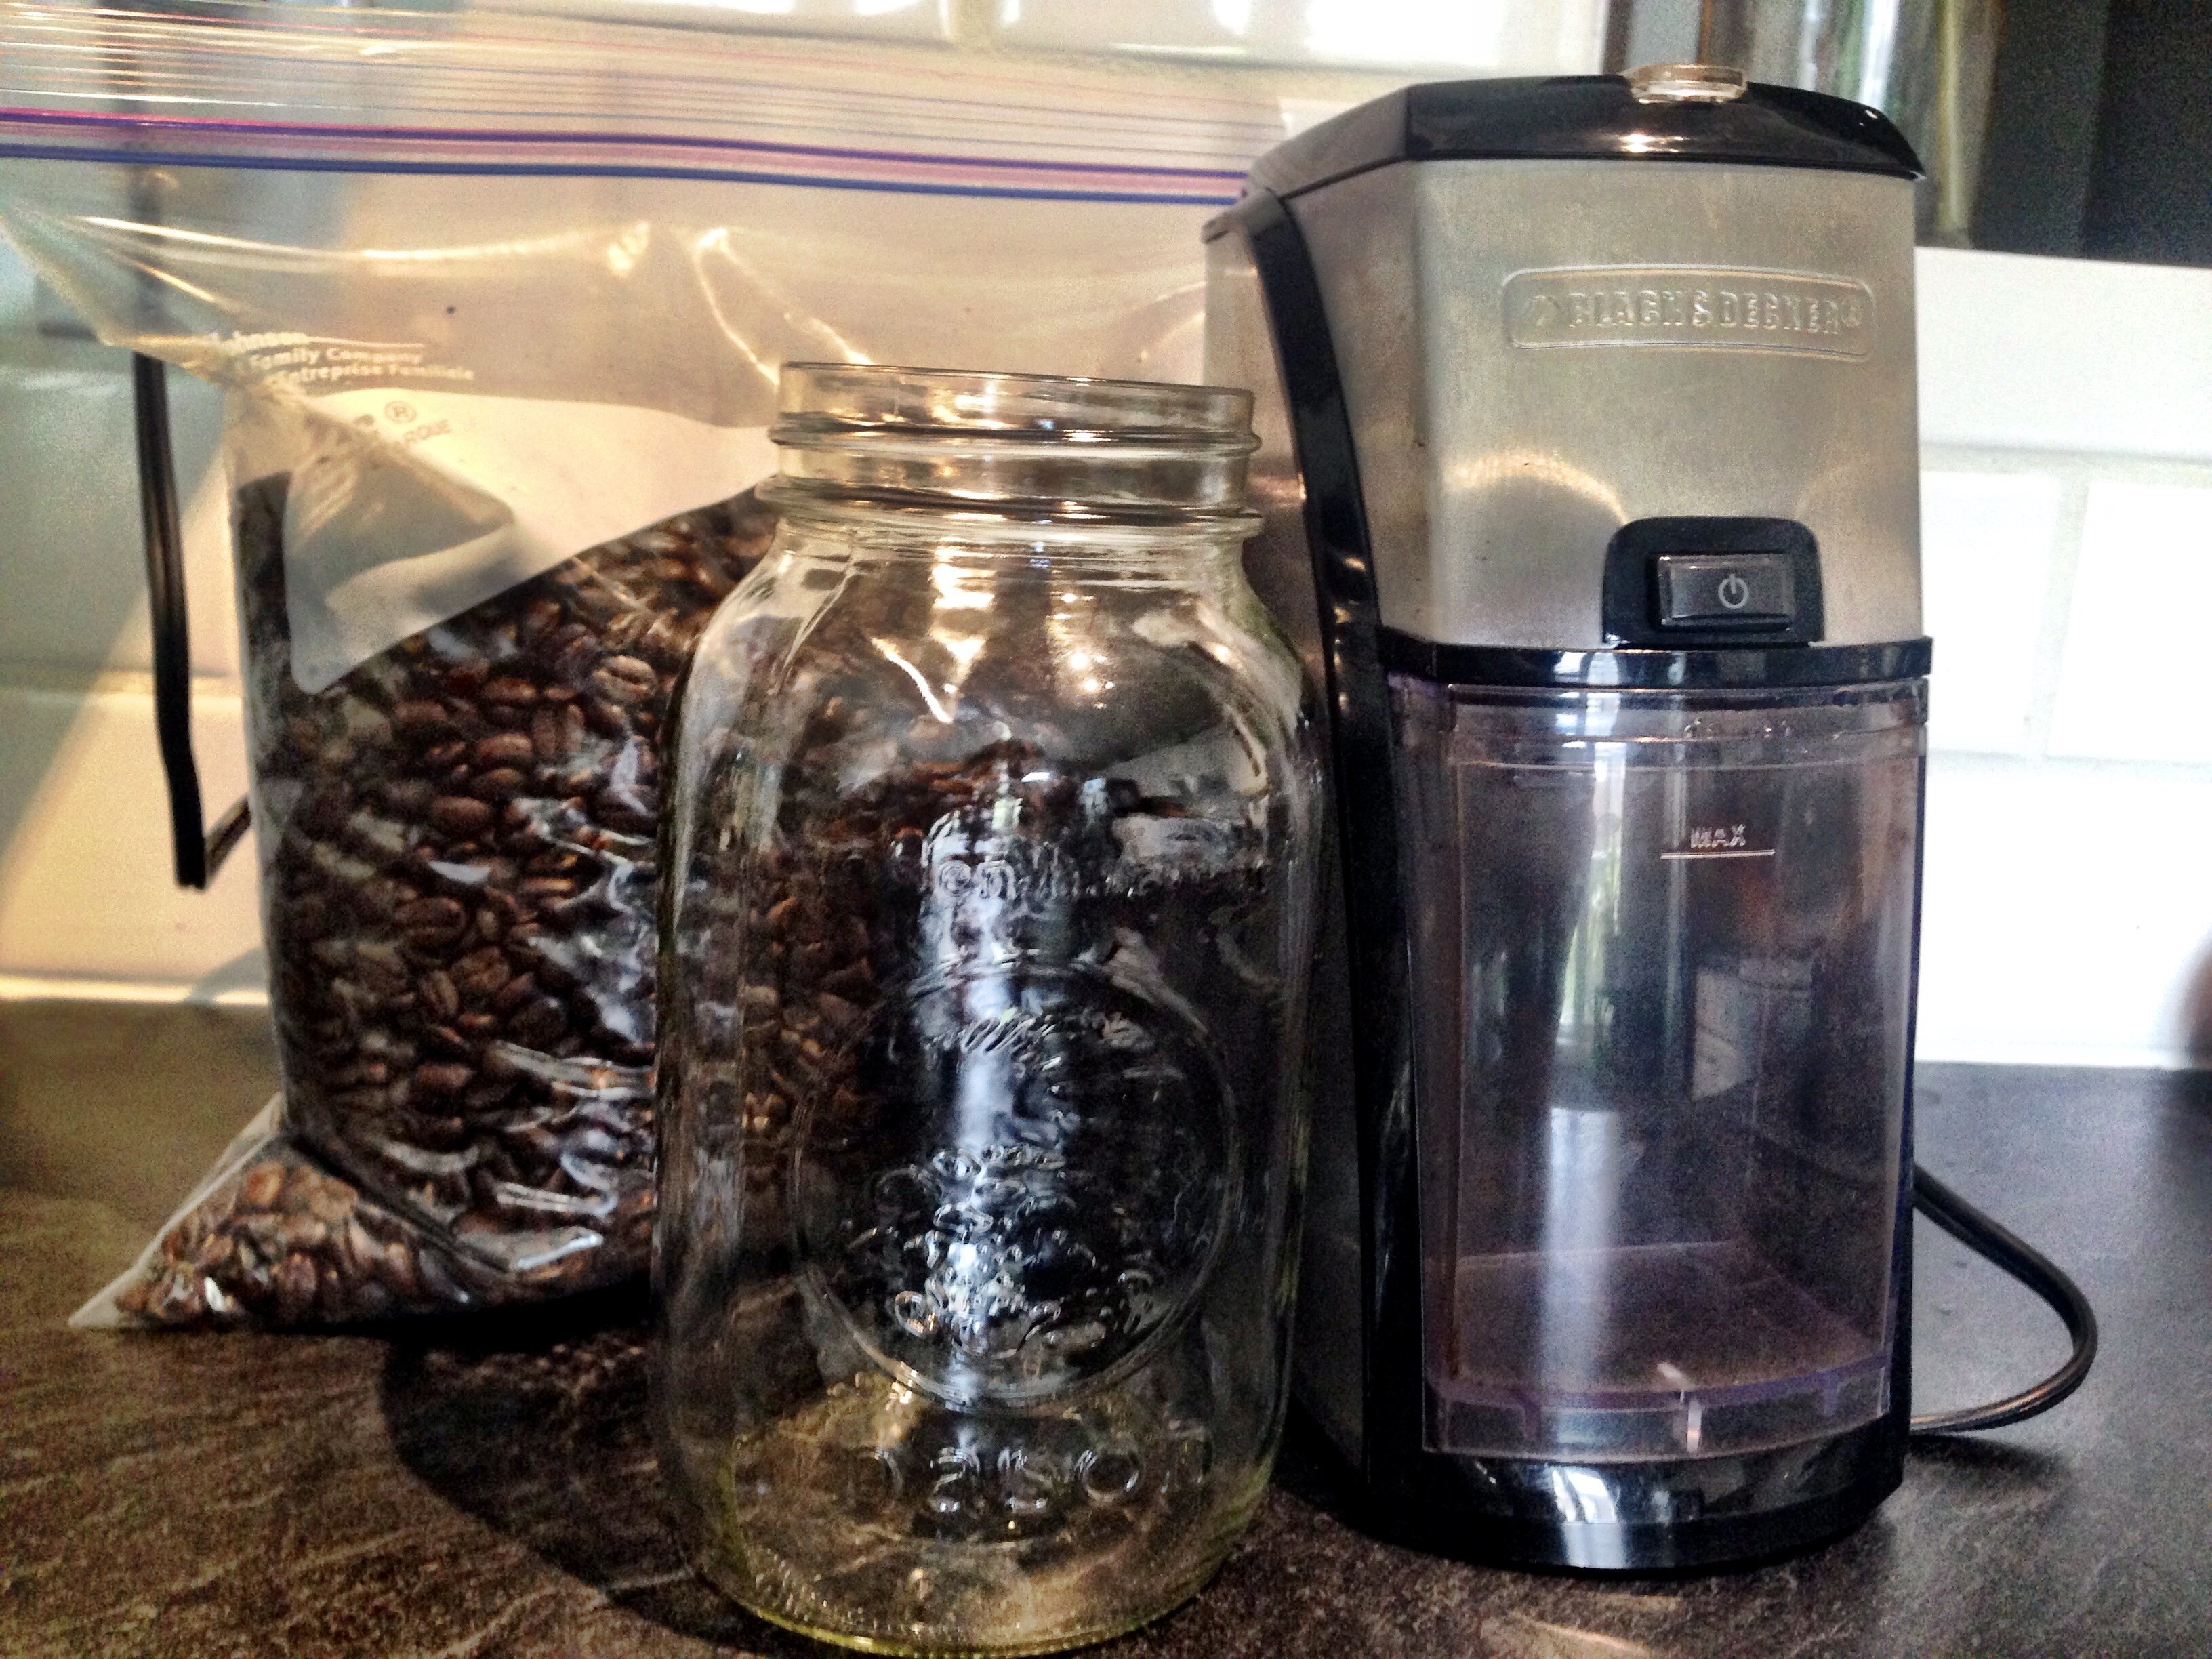 My super-professional coffee making supplies.